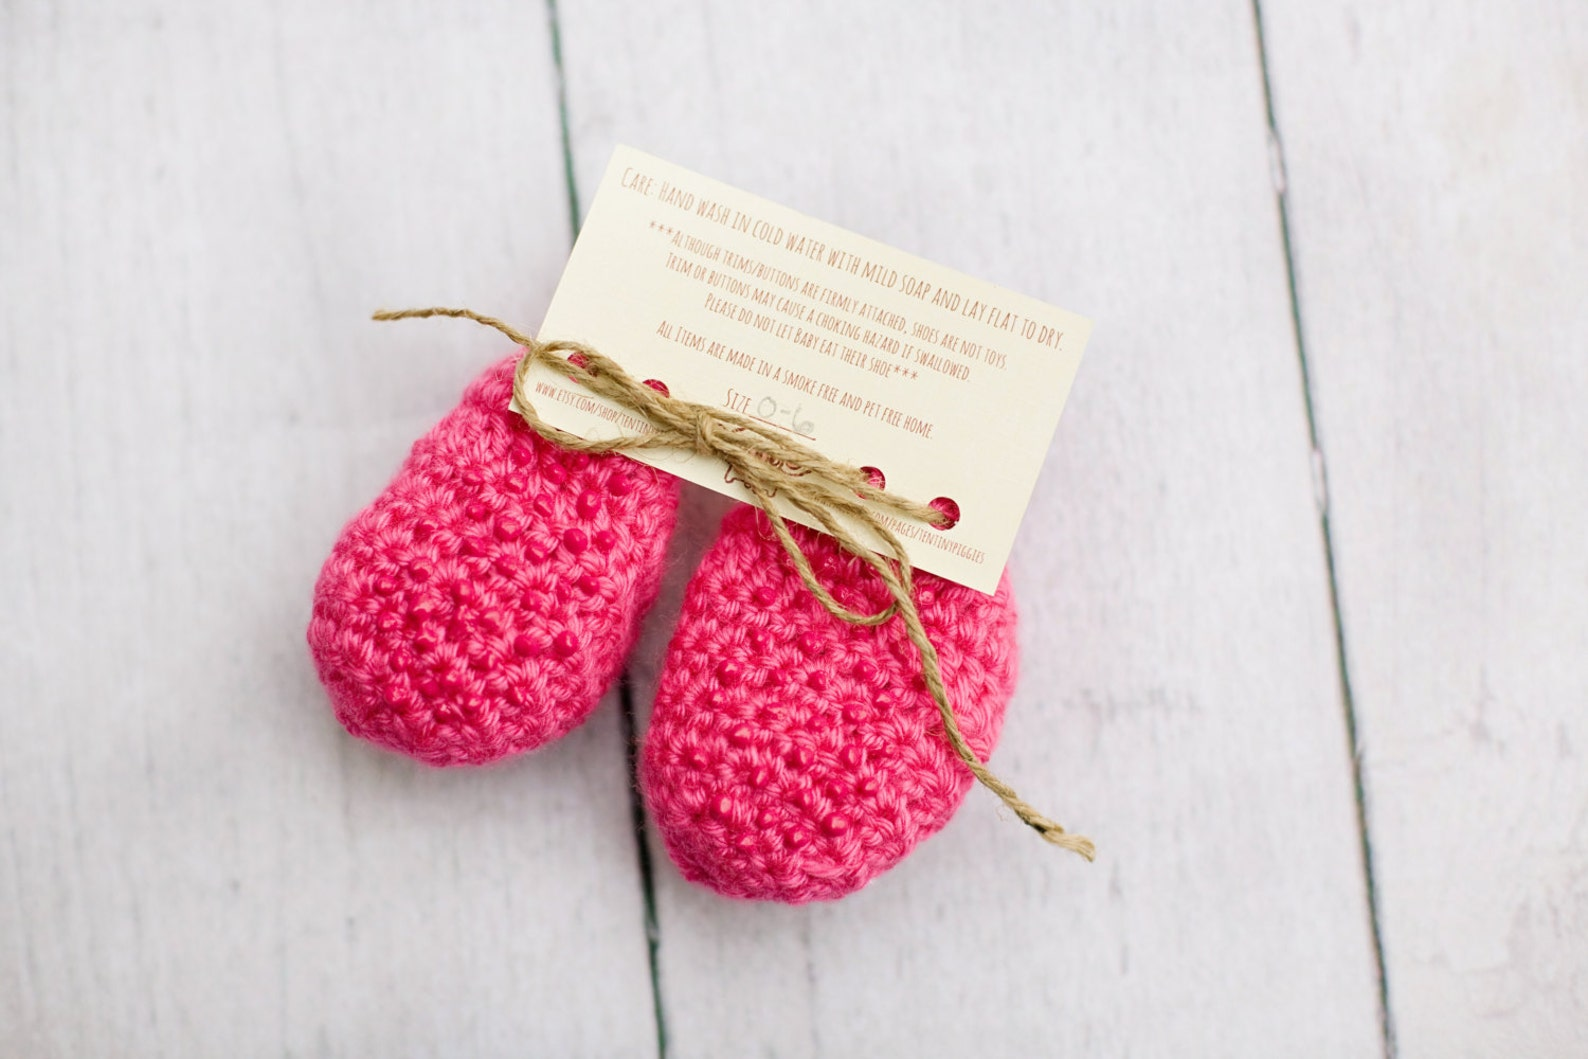 custom sassy slippers crochet knit baby shoes ballet flats socks floral button handmade variety of colors